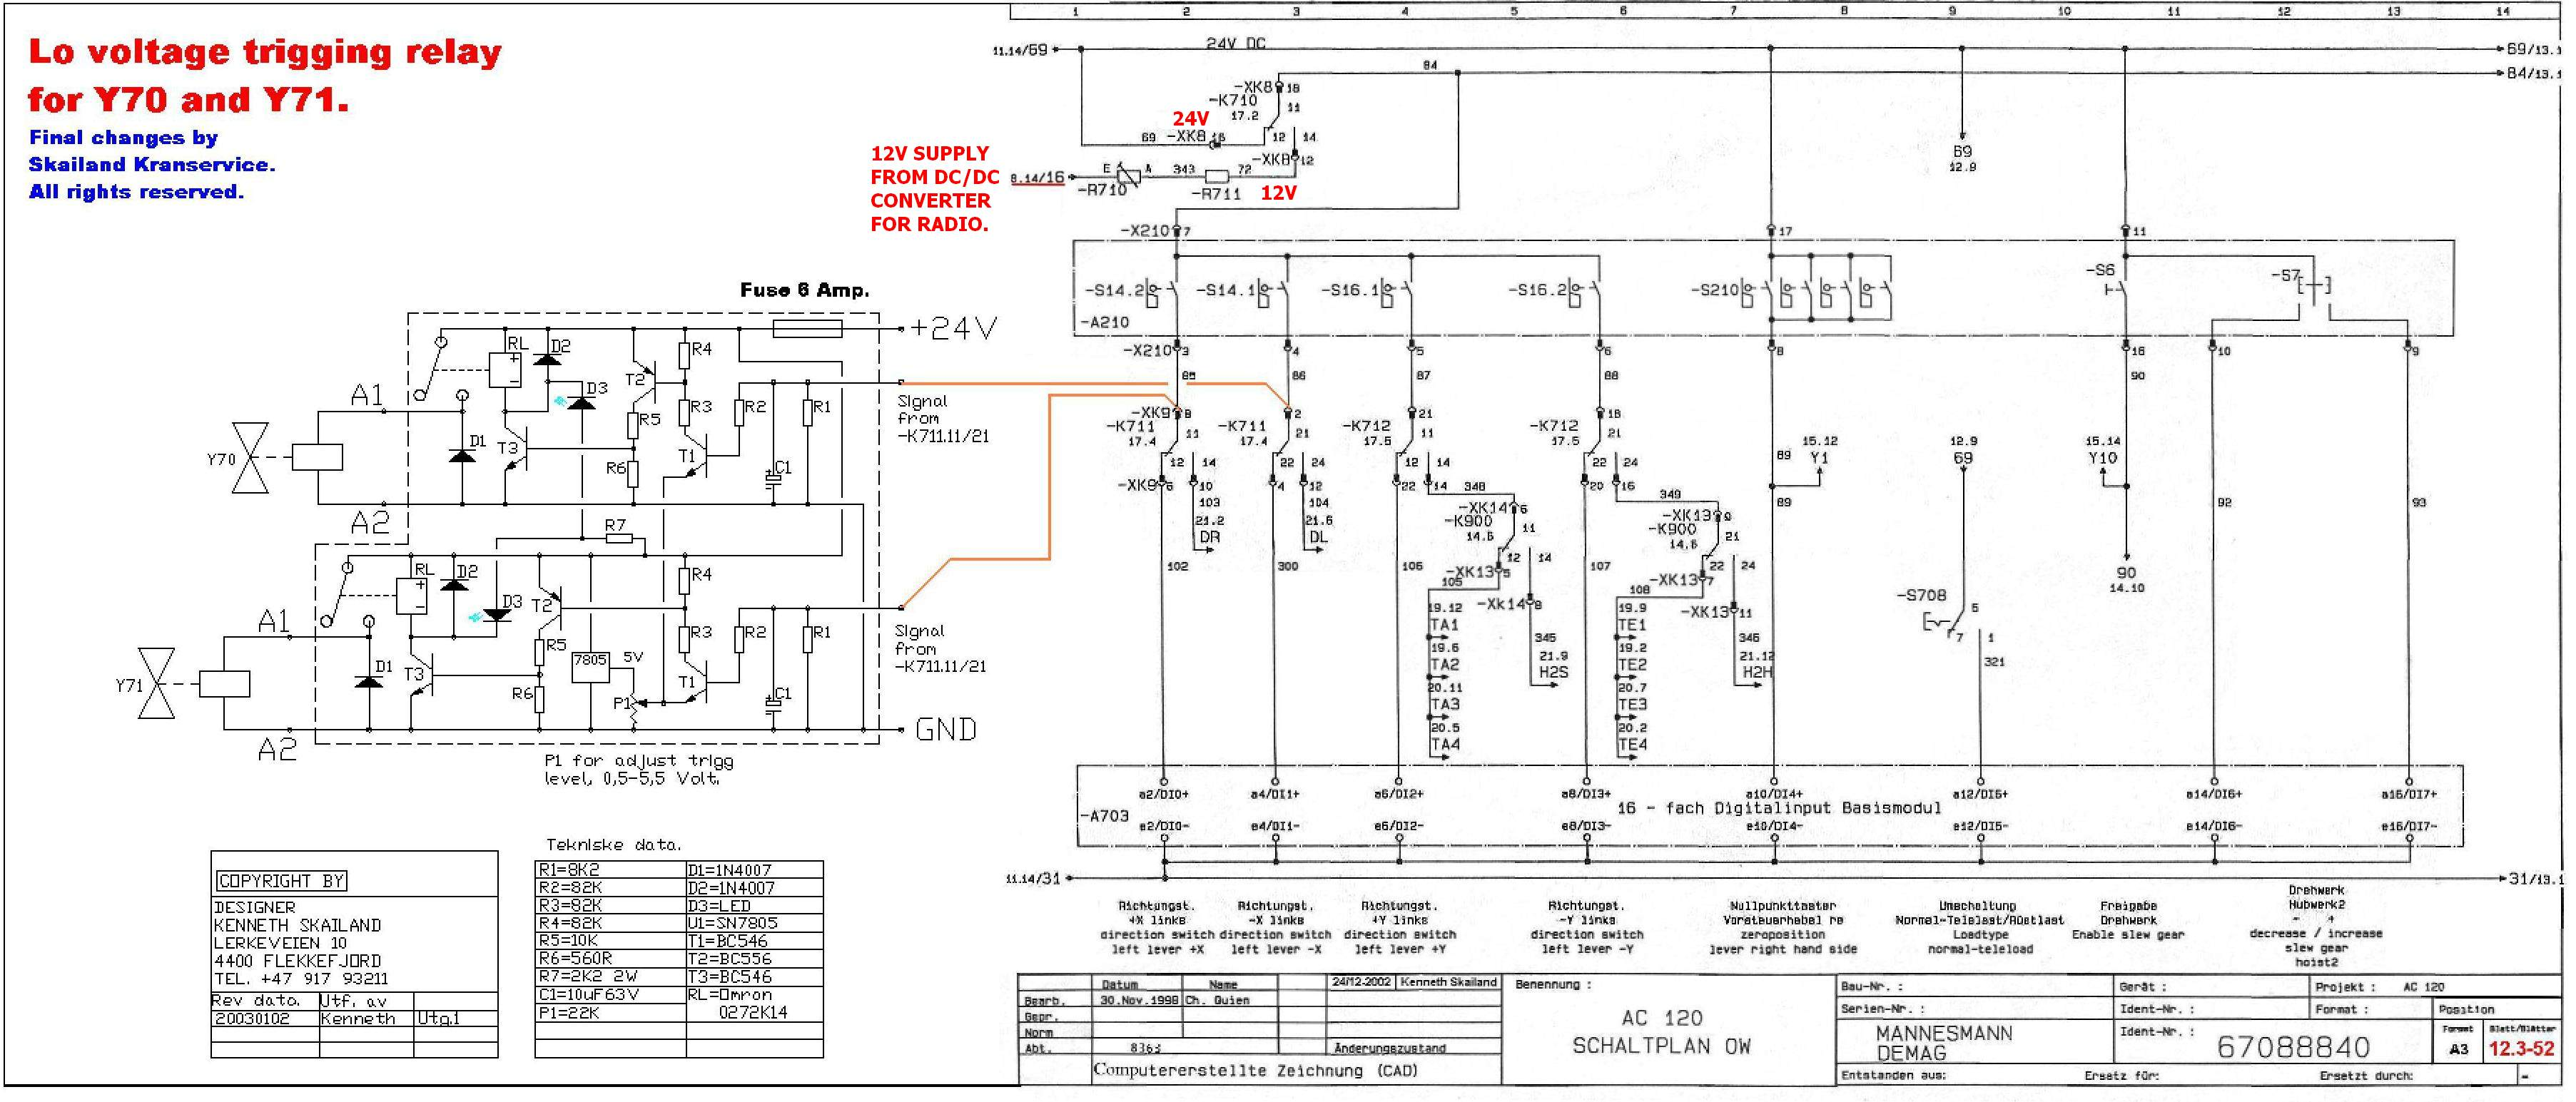 B12.3 demag hoist wiring diagram demag wiring diagrams instruction demag crane wiring diagram at reclaimingppi.co